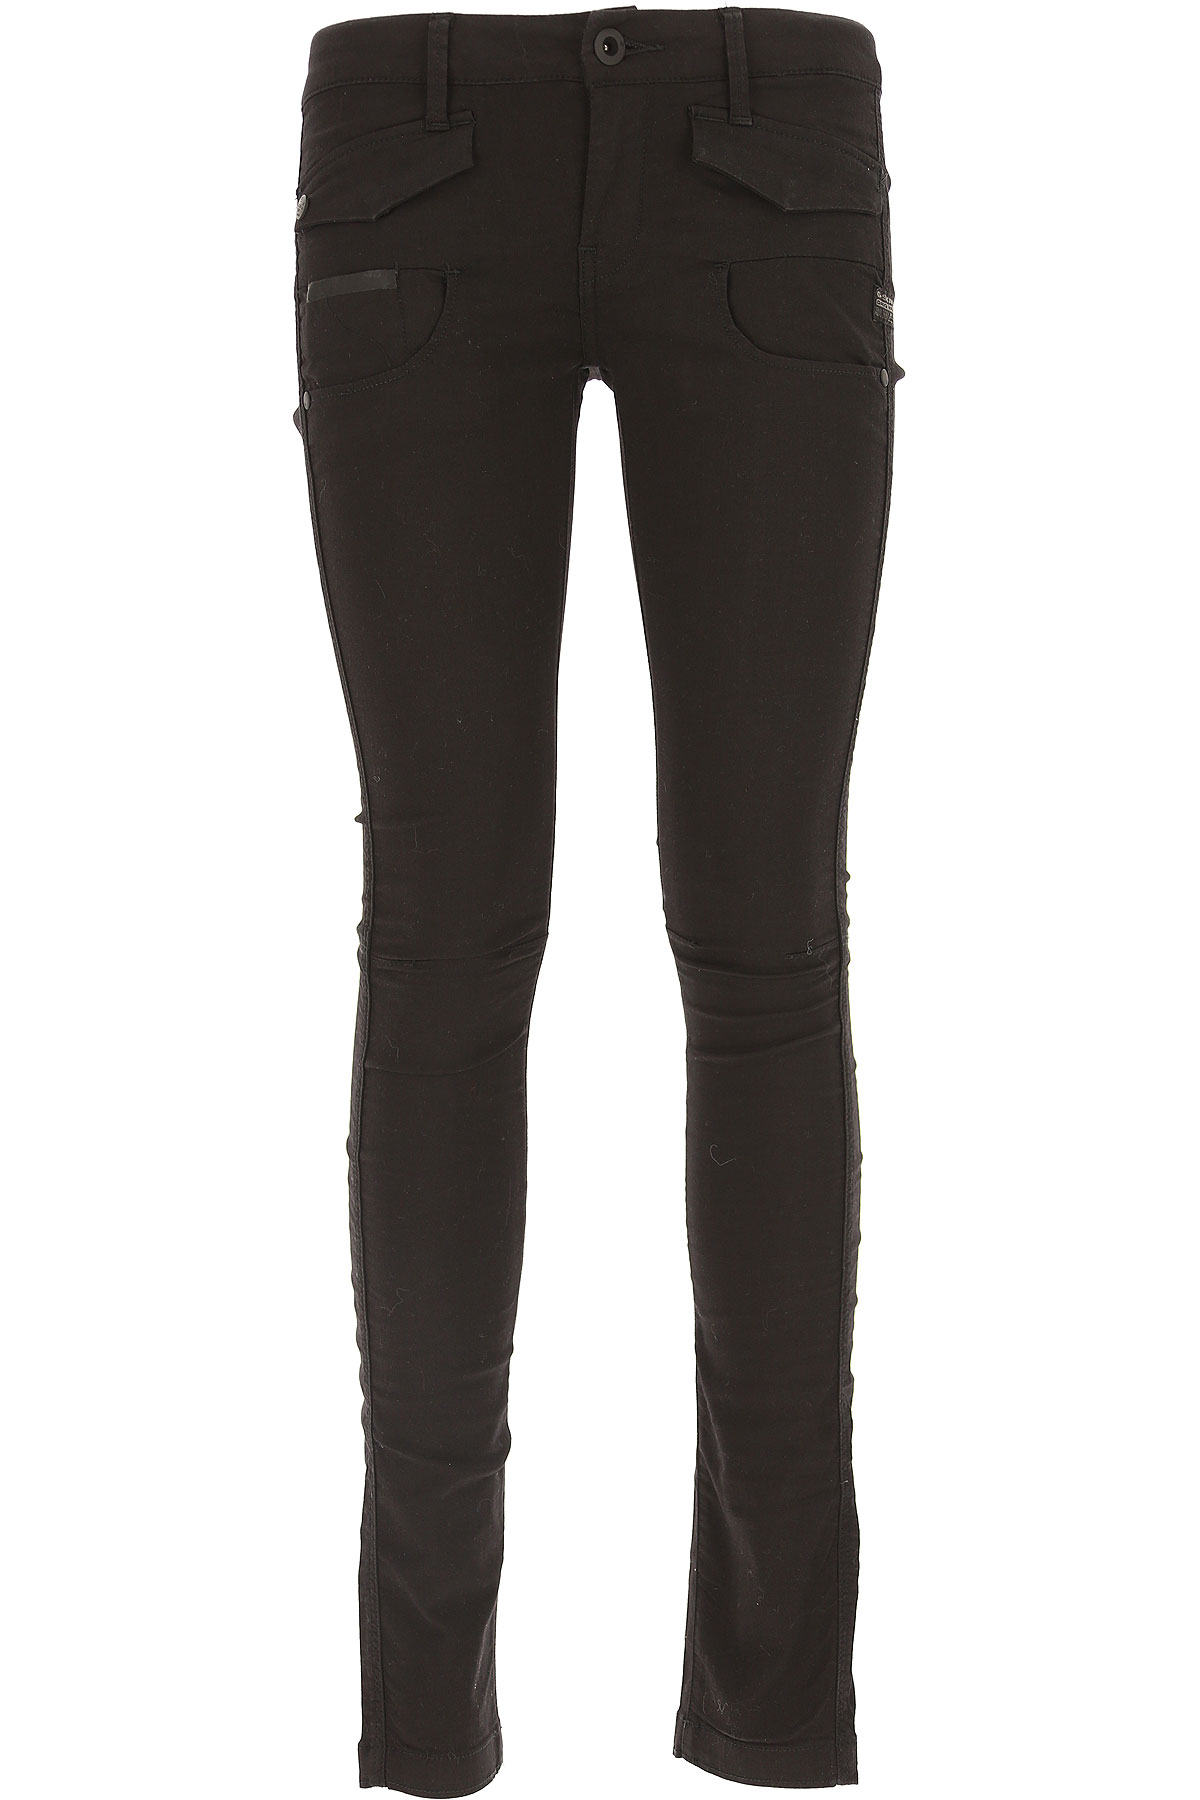 G-Star Pants for Women On Sale in Outlet, Black, Cotton, 2019, 26 27 30